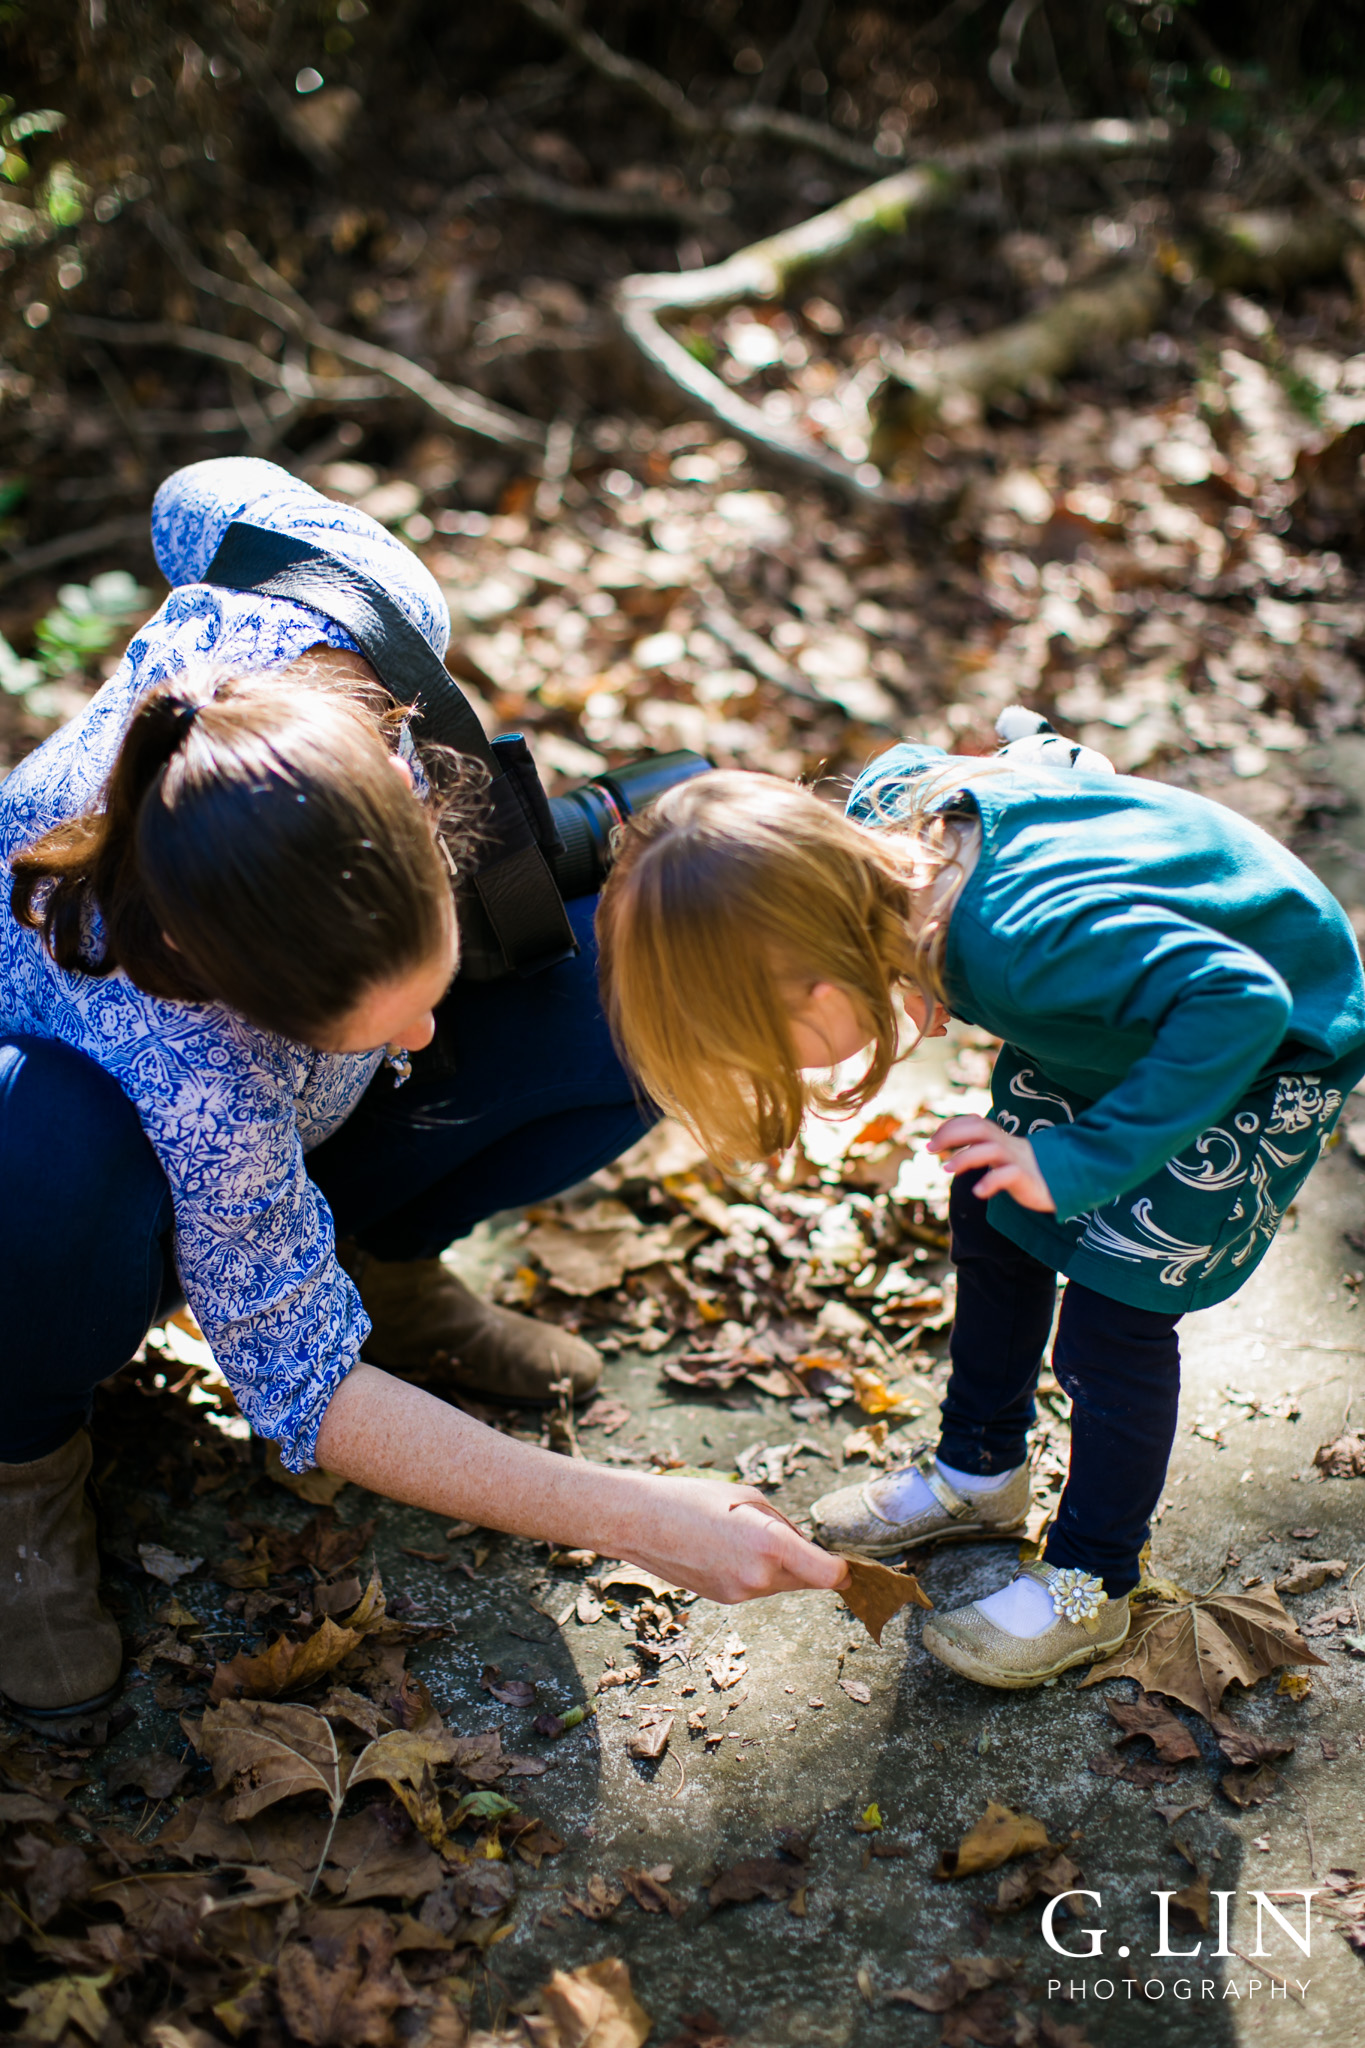 Durham Family Photographer | G. Lin Photography | Mother wiping off dirt from daughter's shoes